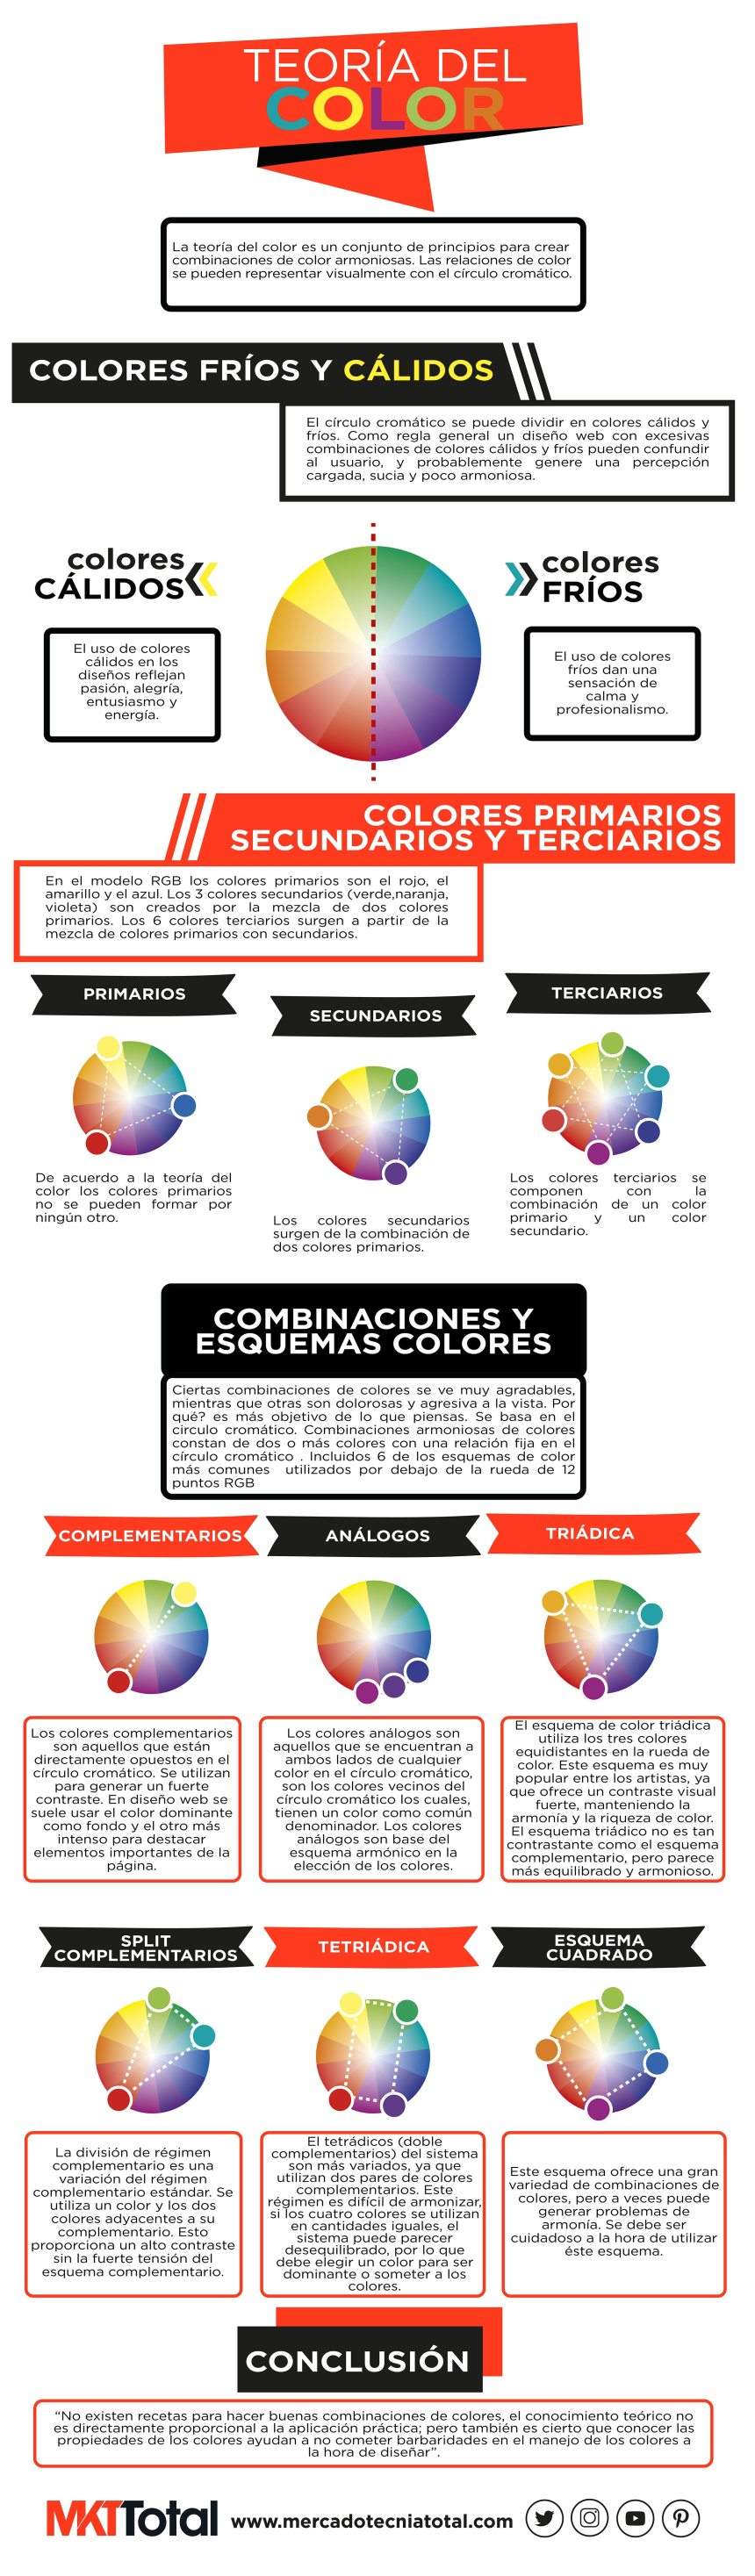 Teoría del color #infografia #infographic #design